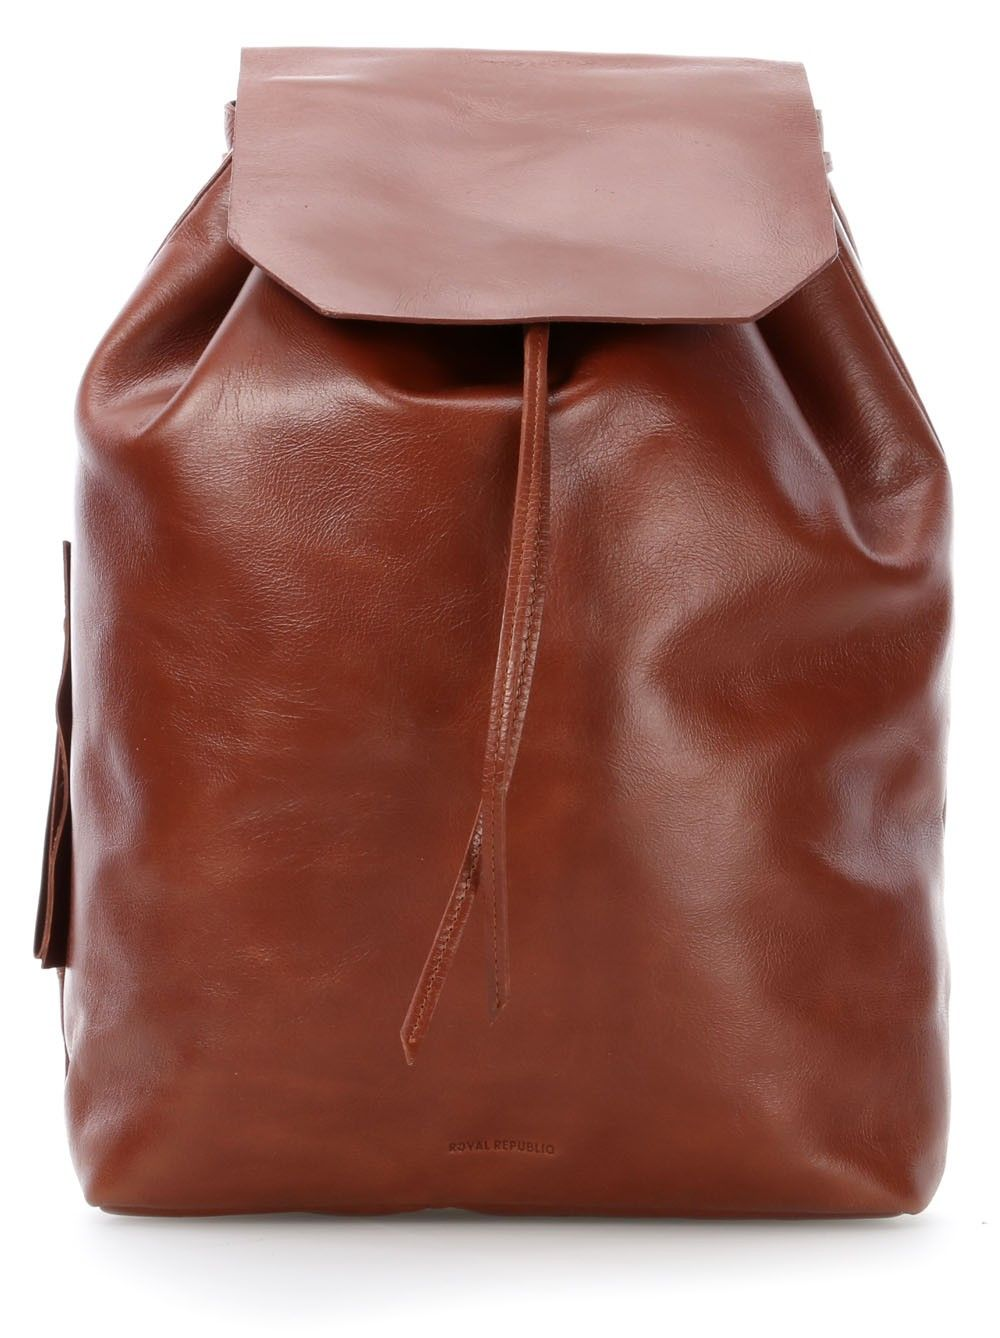 wardow.com - Royal RepubliQ, Bucket 13'' Rucksack Leder Cognac 40 cm